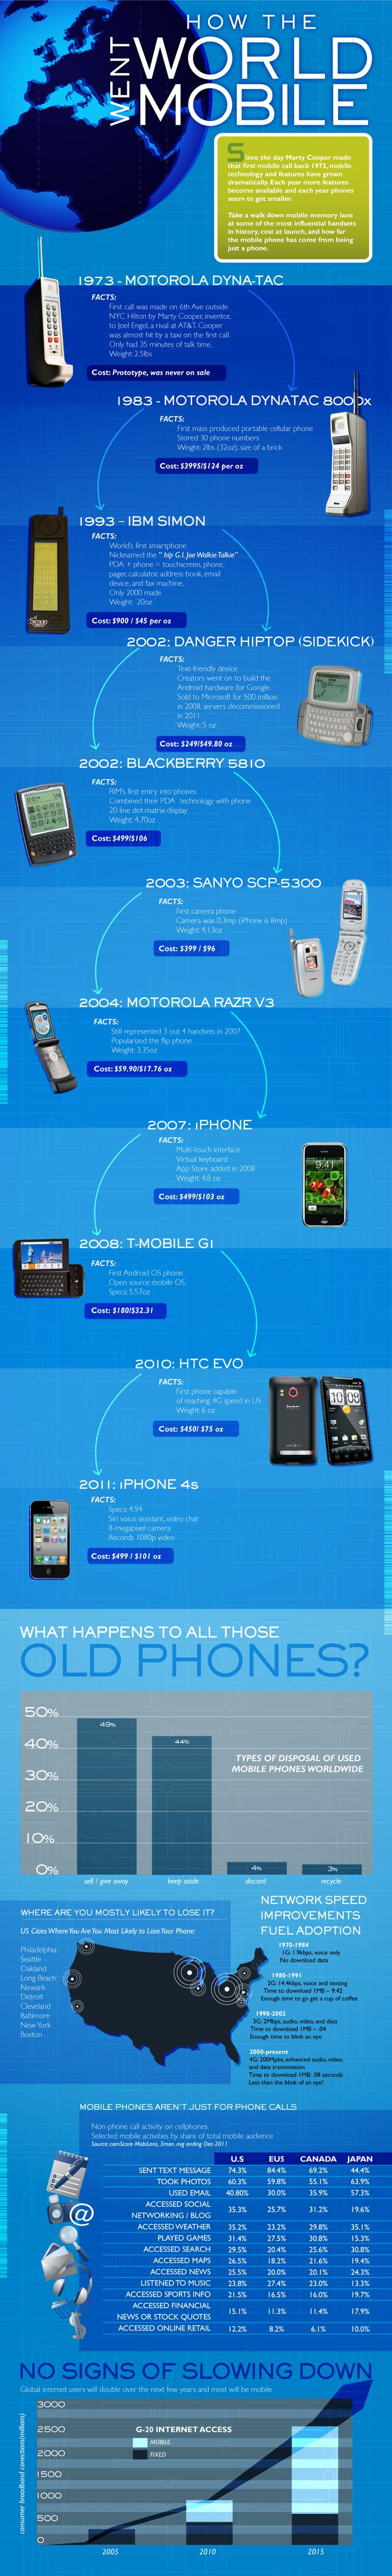 Cloud Infographic: Big Data And Mobile Communications